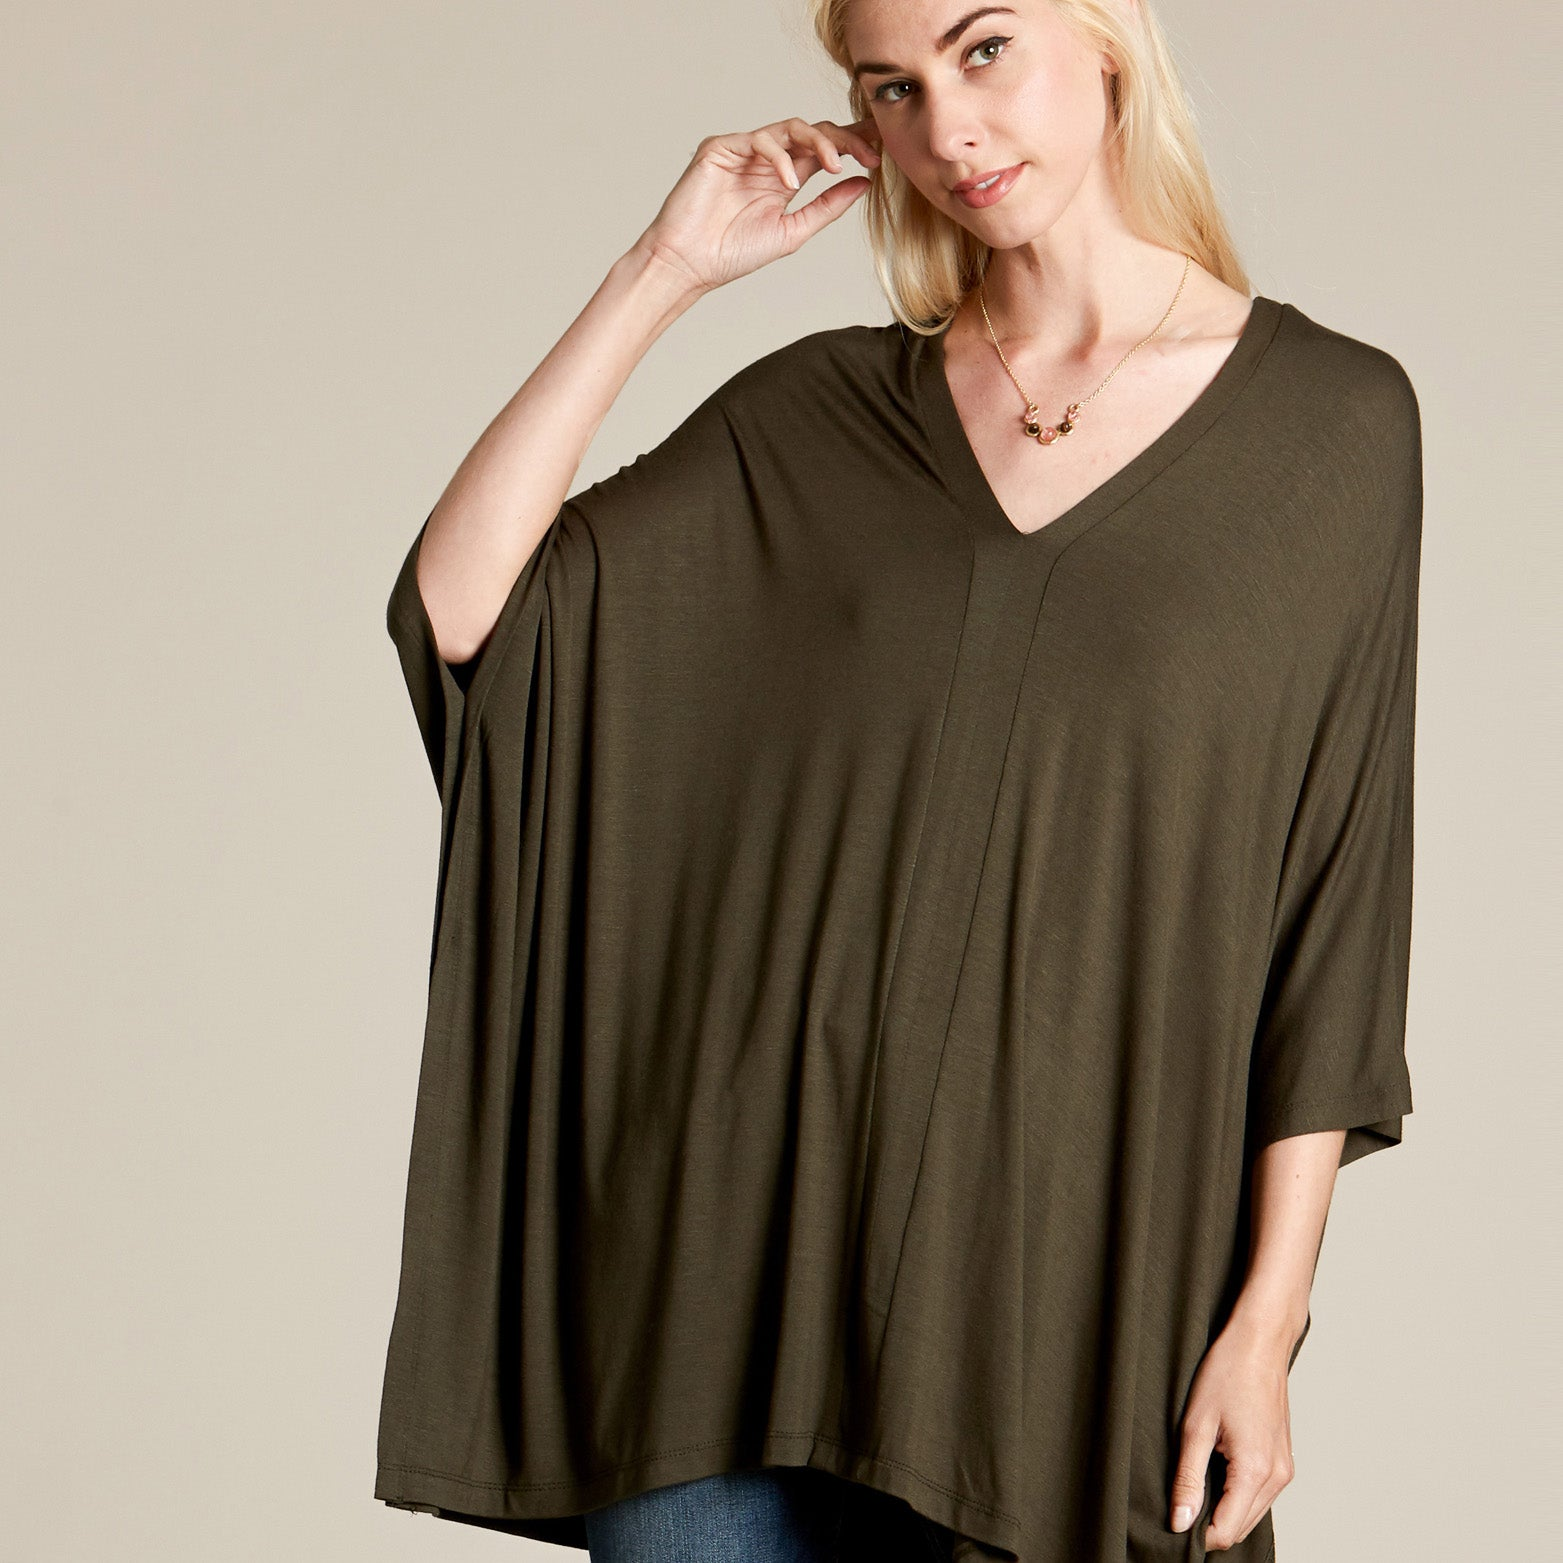 Not Too Oversized Tunic Top